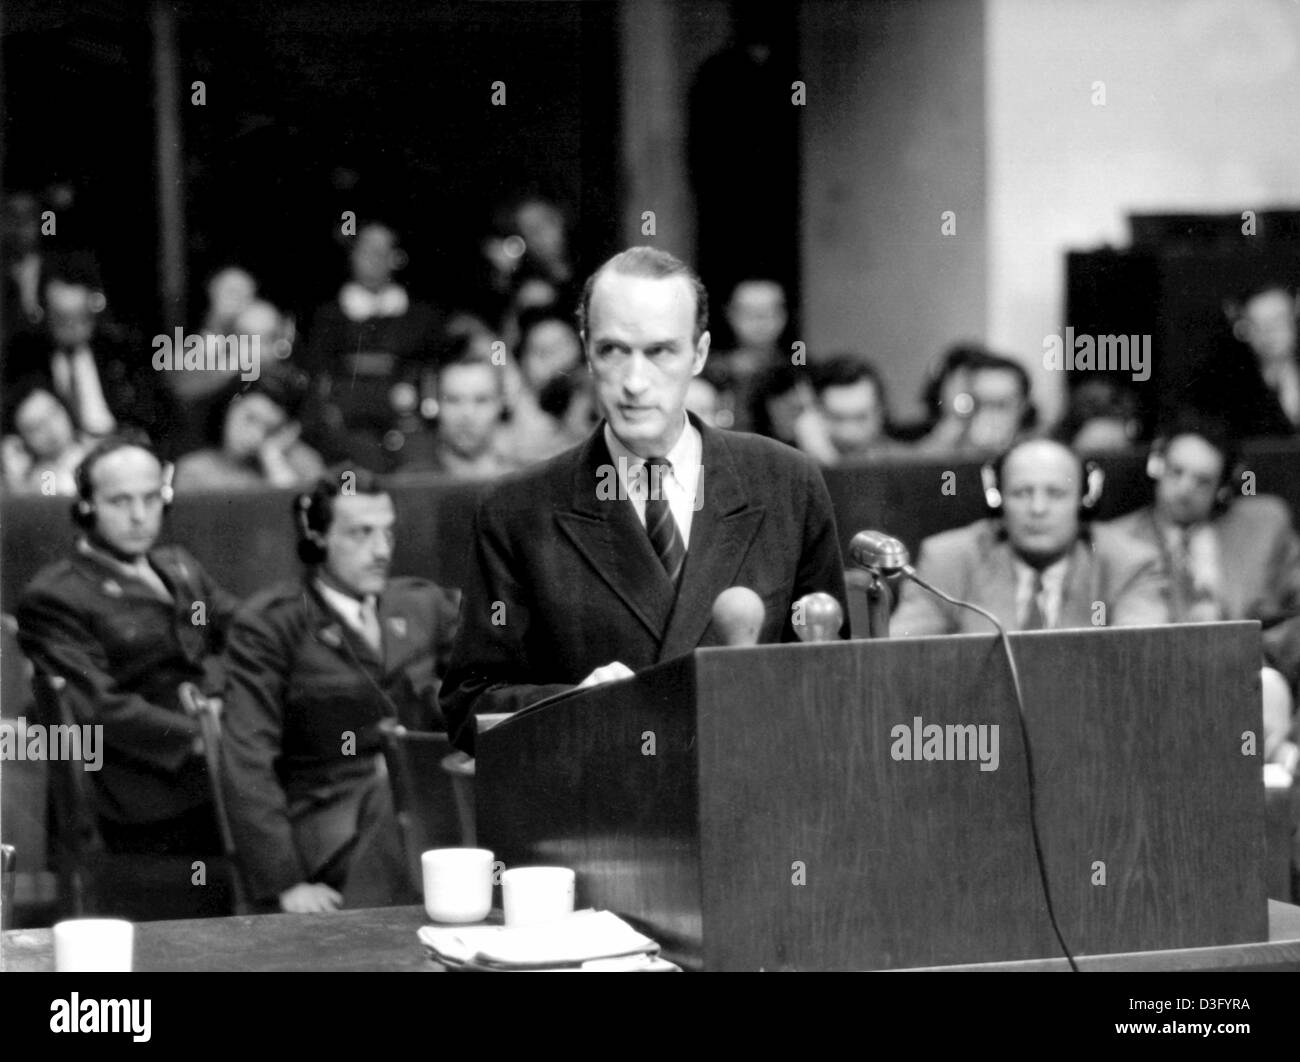 (dpa files) - The industrial magnate Alfried Krupp von Bohlen und Halbach, former sole owner of the Krupp company - Stock Image